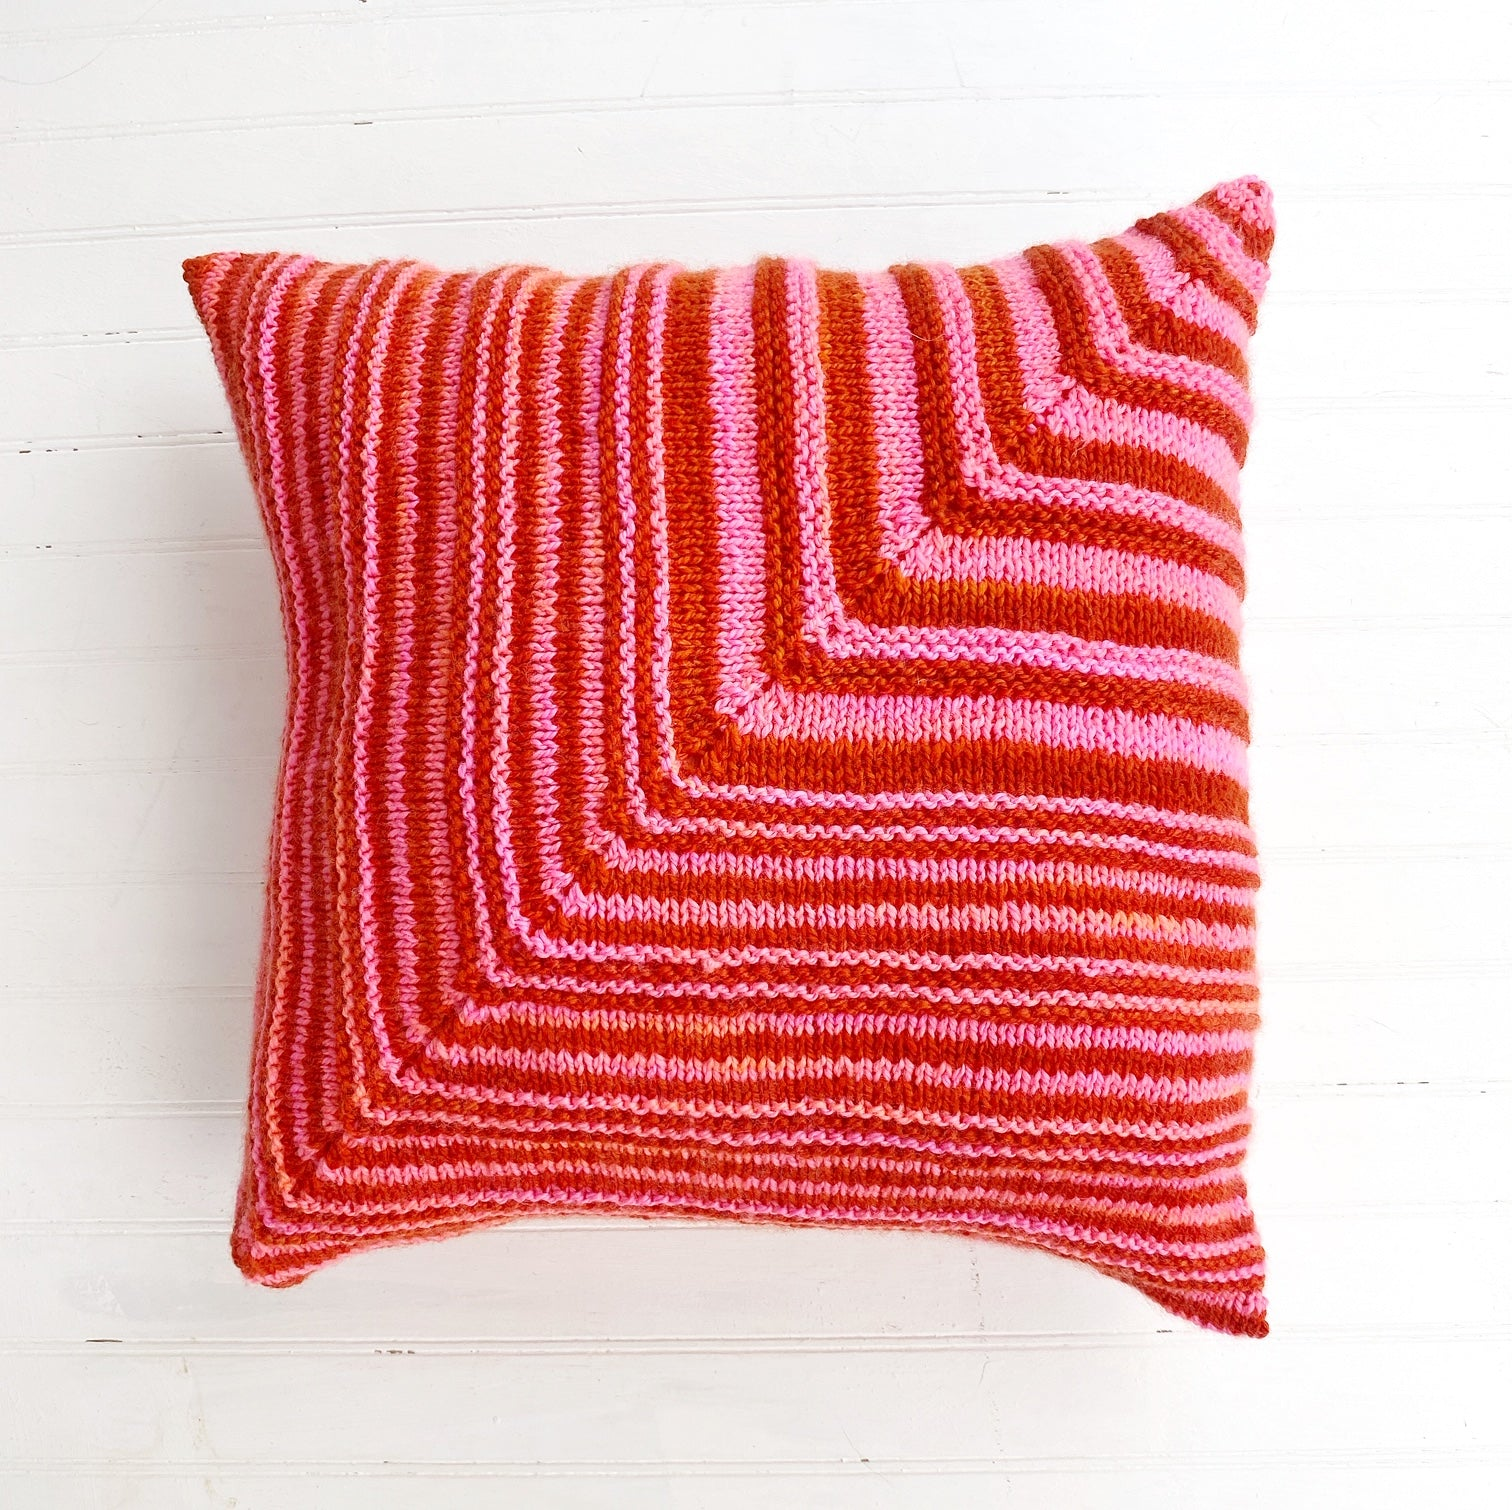 Squared Pillow (knit)